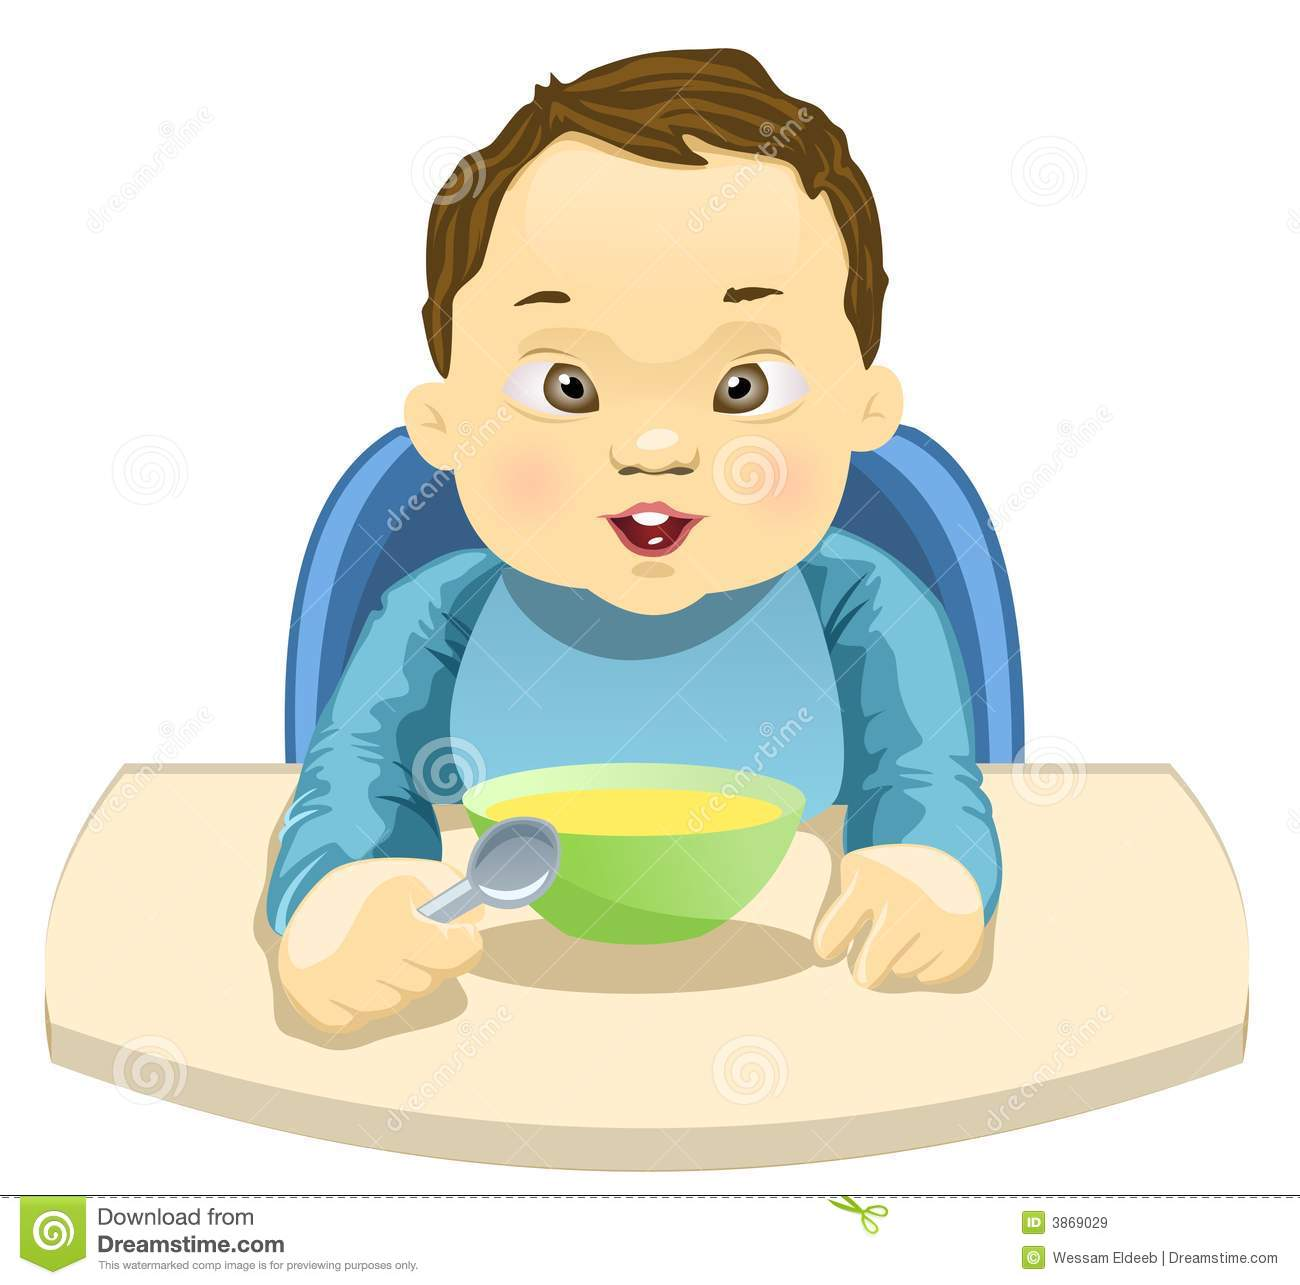 Child Eating His Meal Royalty Free Stock Images - Image: 3869029